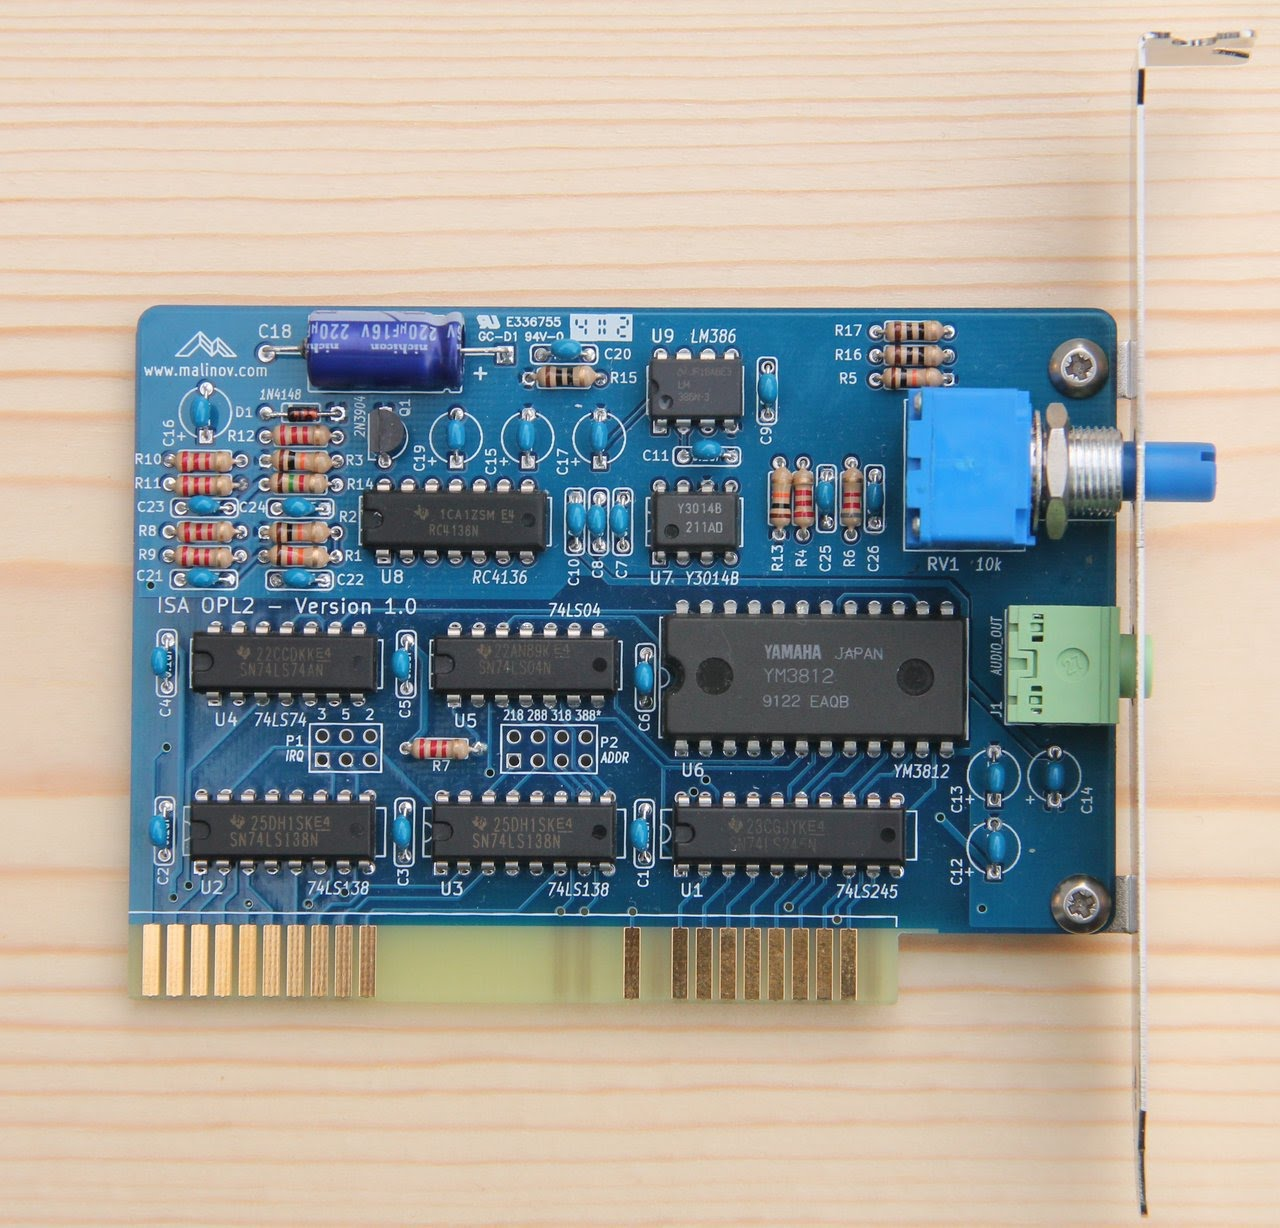 small resolution of isa opl2 complete board jpg